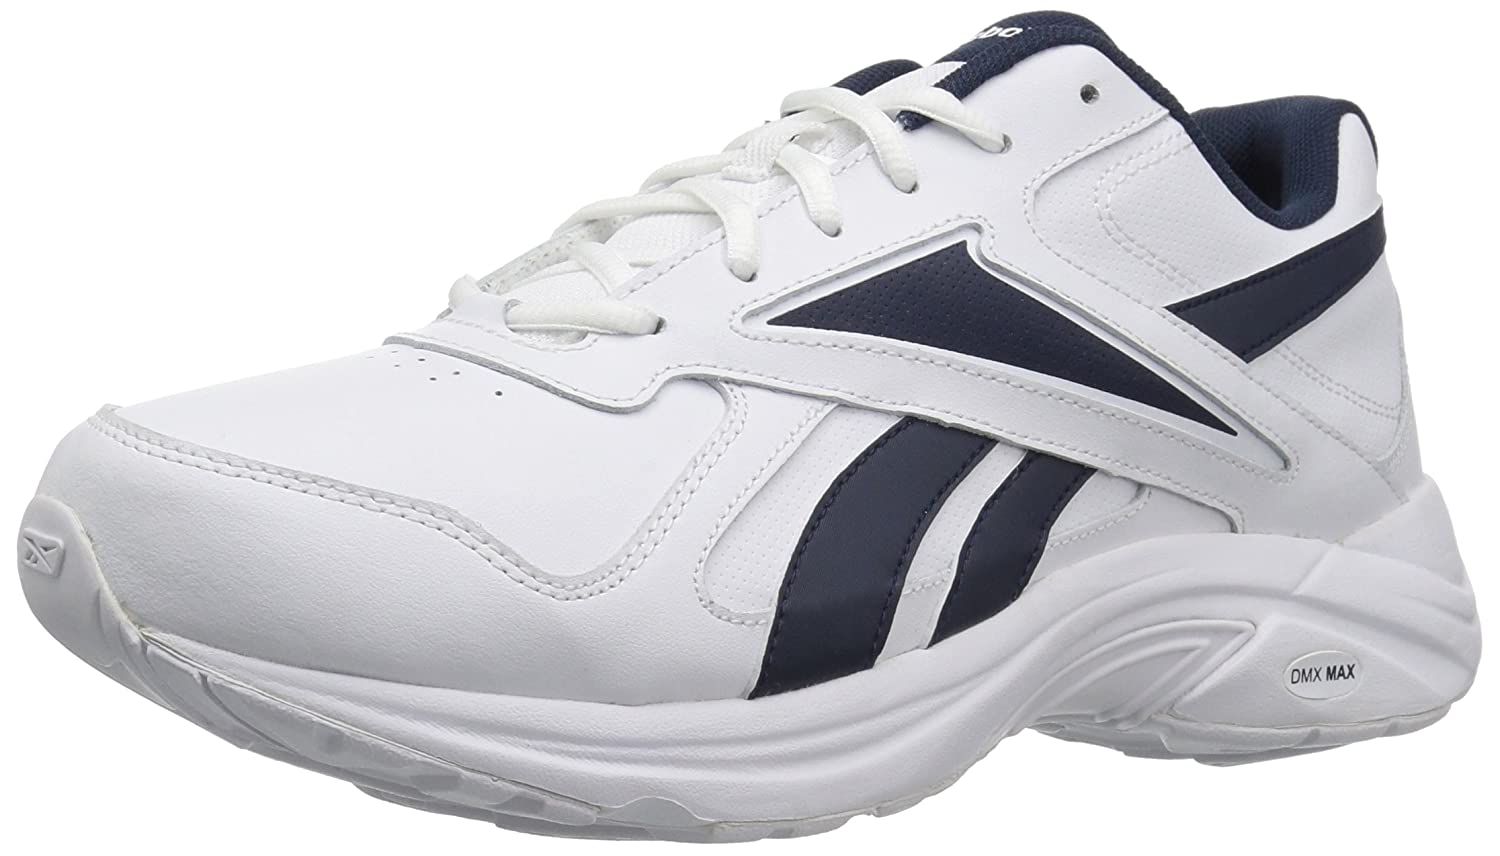 Reebok Men's Walk - Ultra V Dmx Wide Max B073PHDFQQ US|White/Coll. 8 4E US|White/Coll. Navy - Wide E White/Coll. Navy - Wide E 8 4E US, 港区:258fb280 --- krianta.com